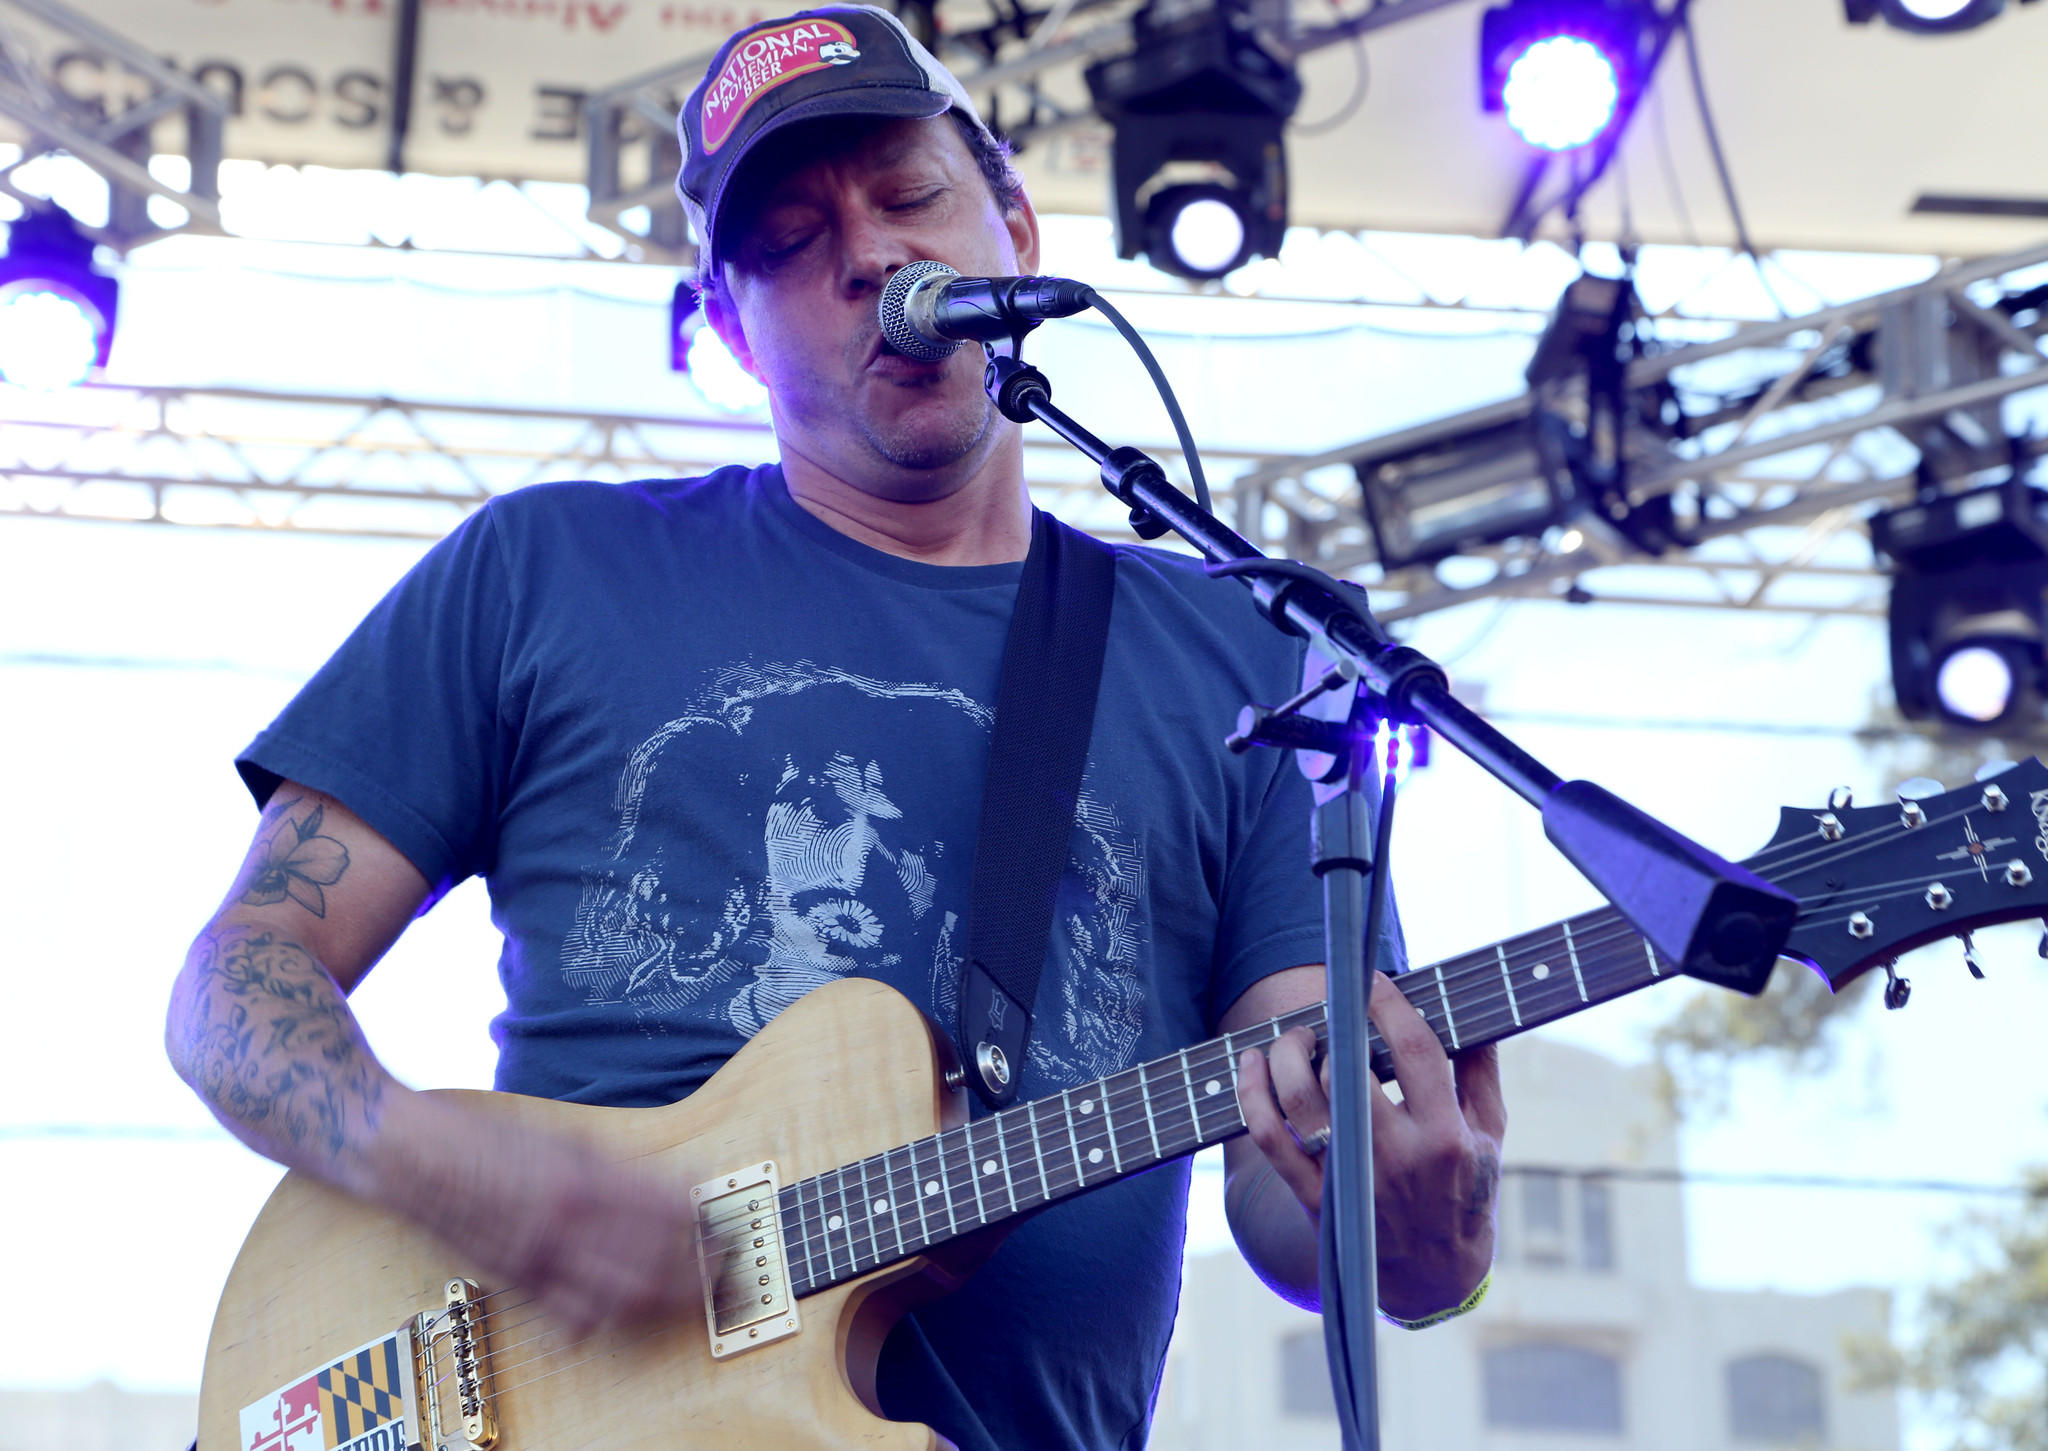 James Davies, better known as Jimi HaHa, performs with Jimmie's Chicken Shack at last summer's Shindig Festival.